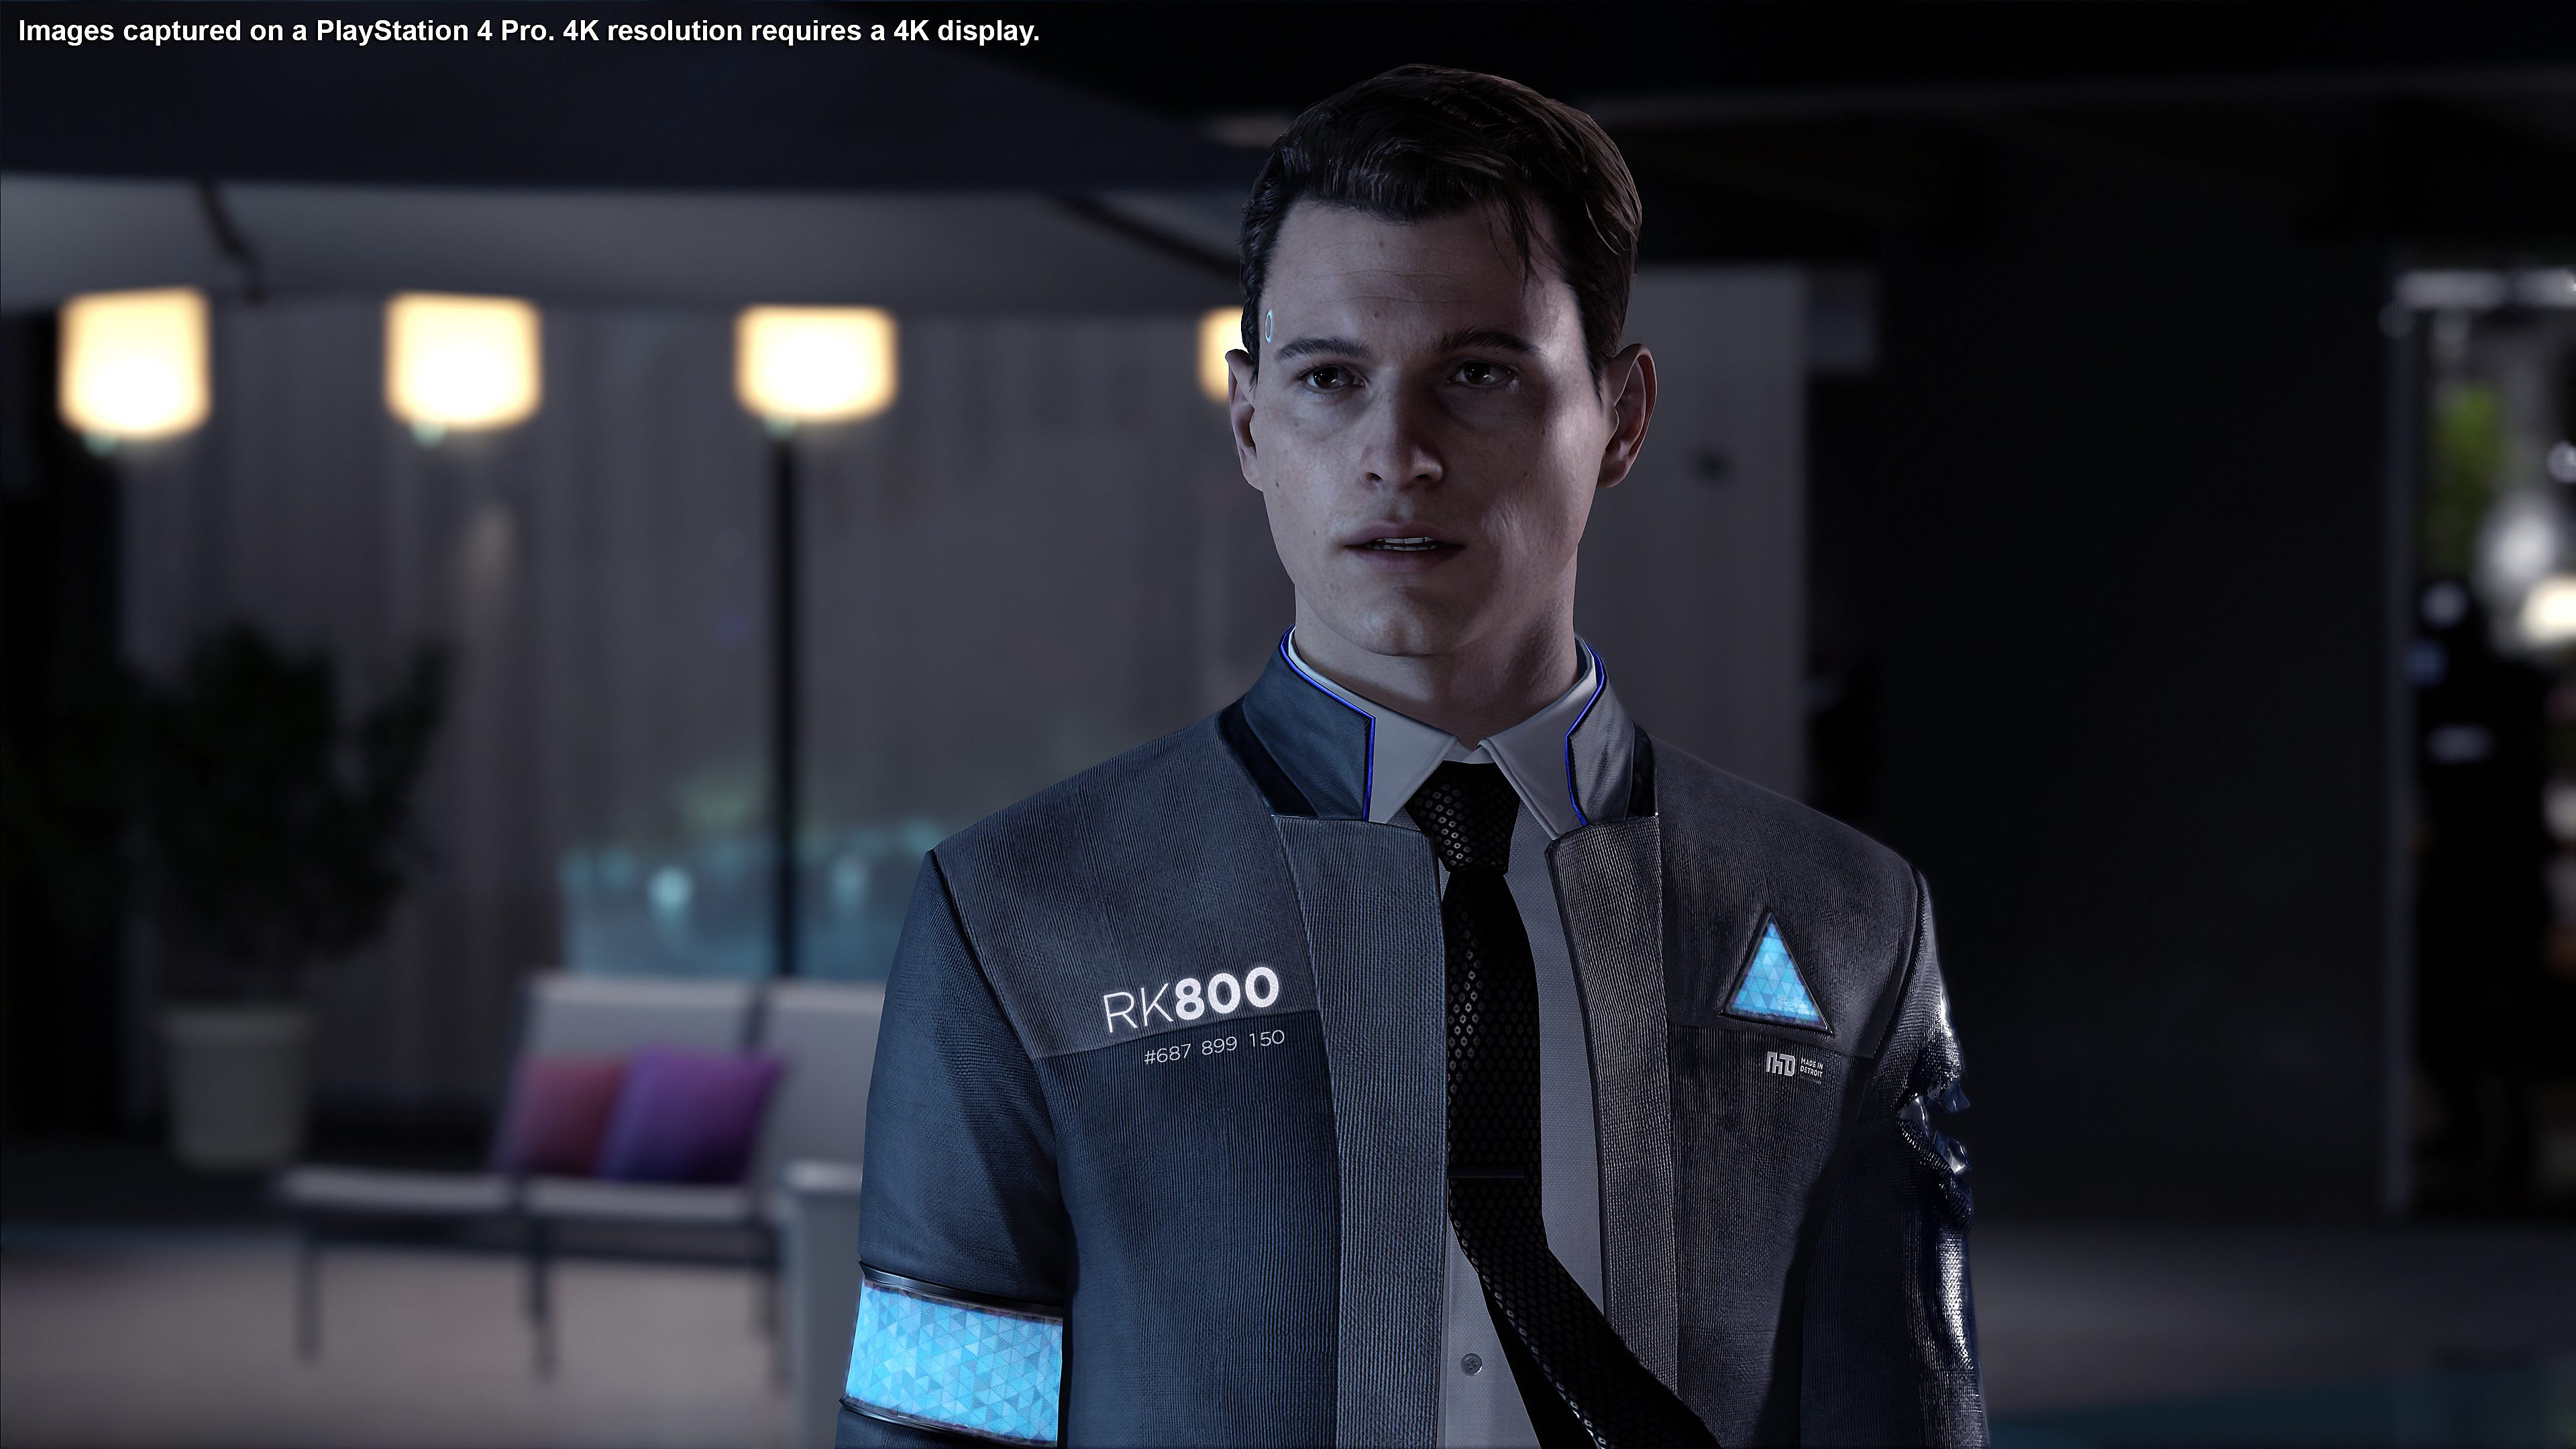 Captura de tela 1 de Detroit: Become Human